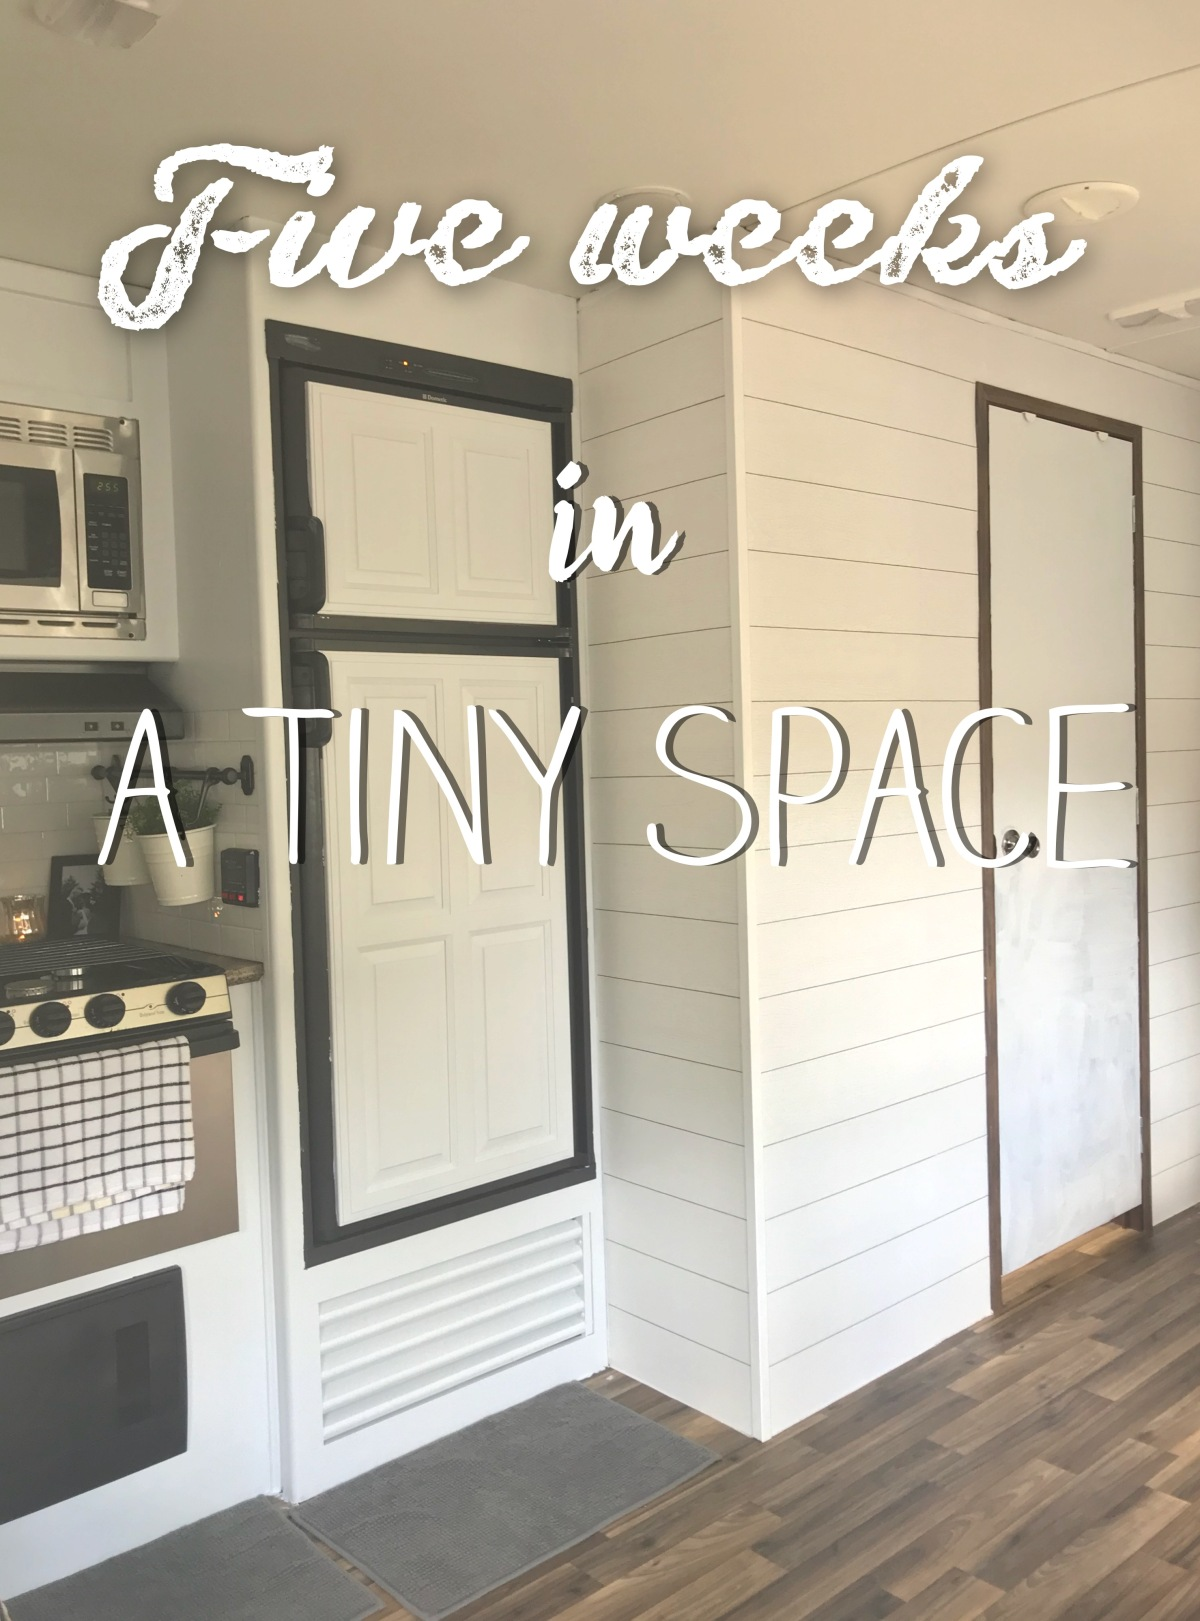 Five weeks in a tinyspace